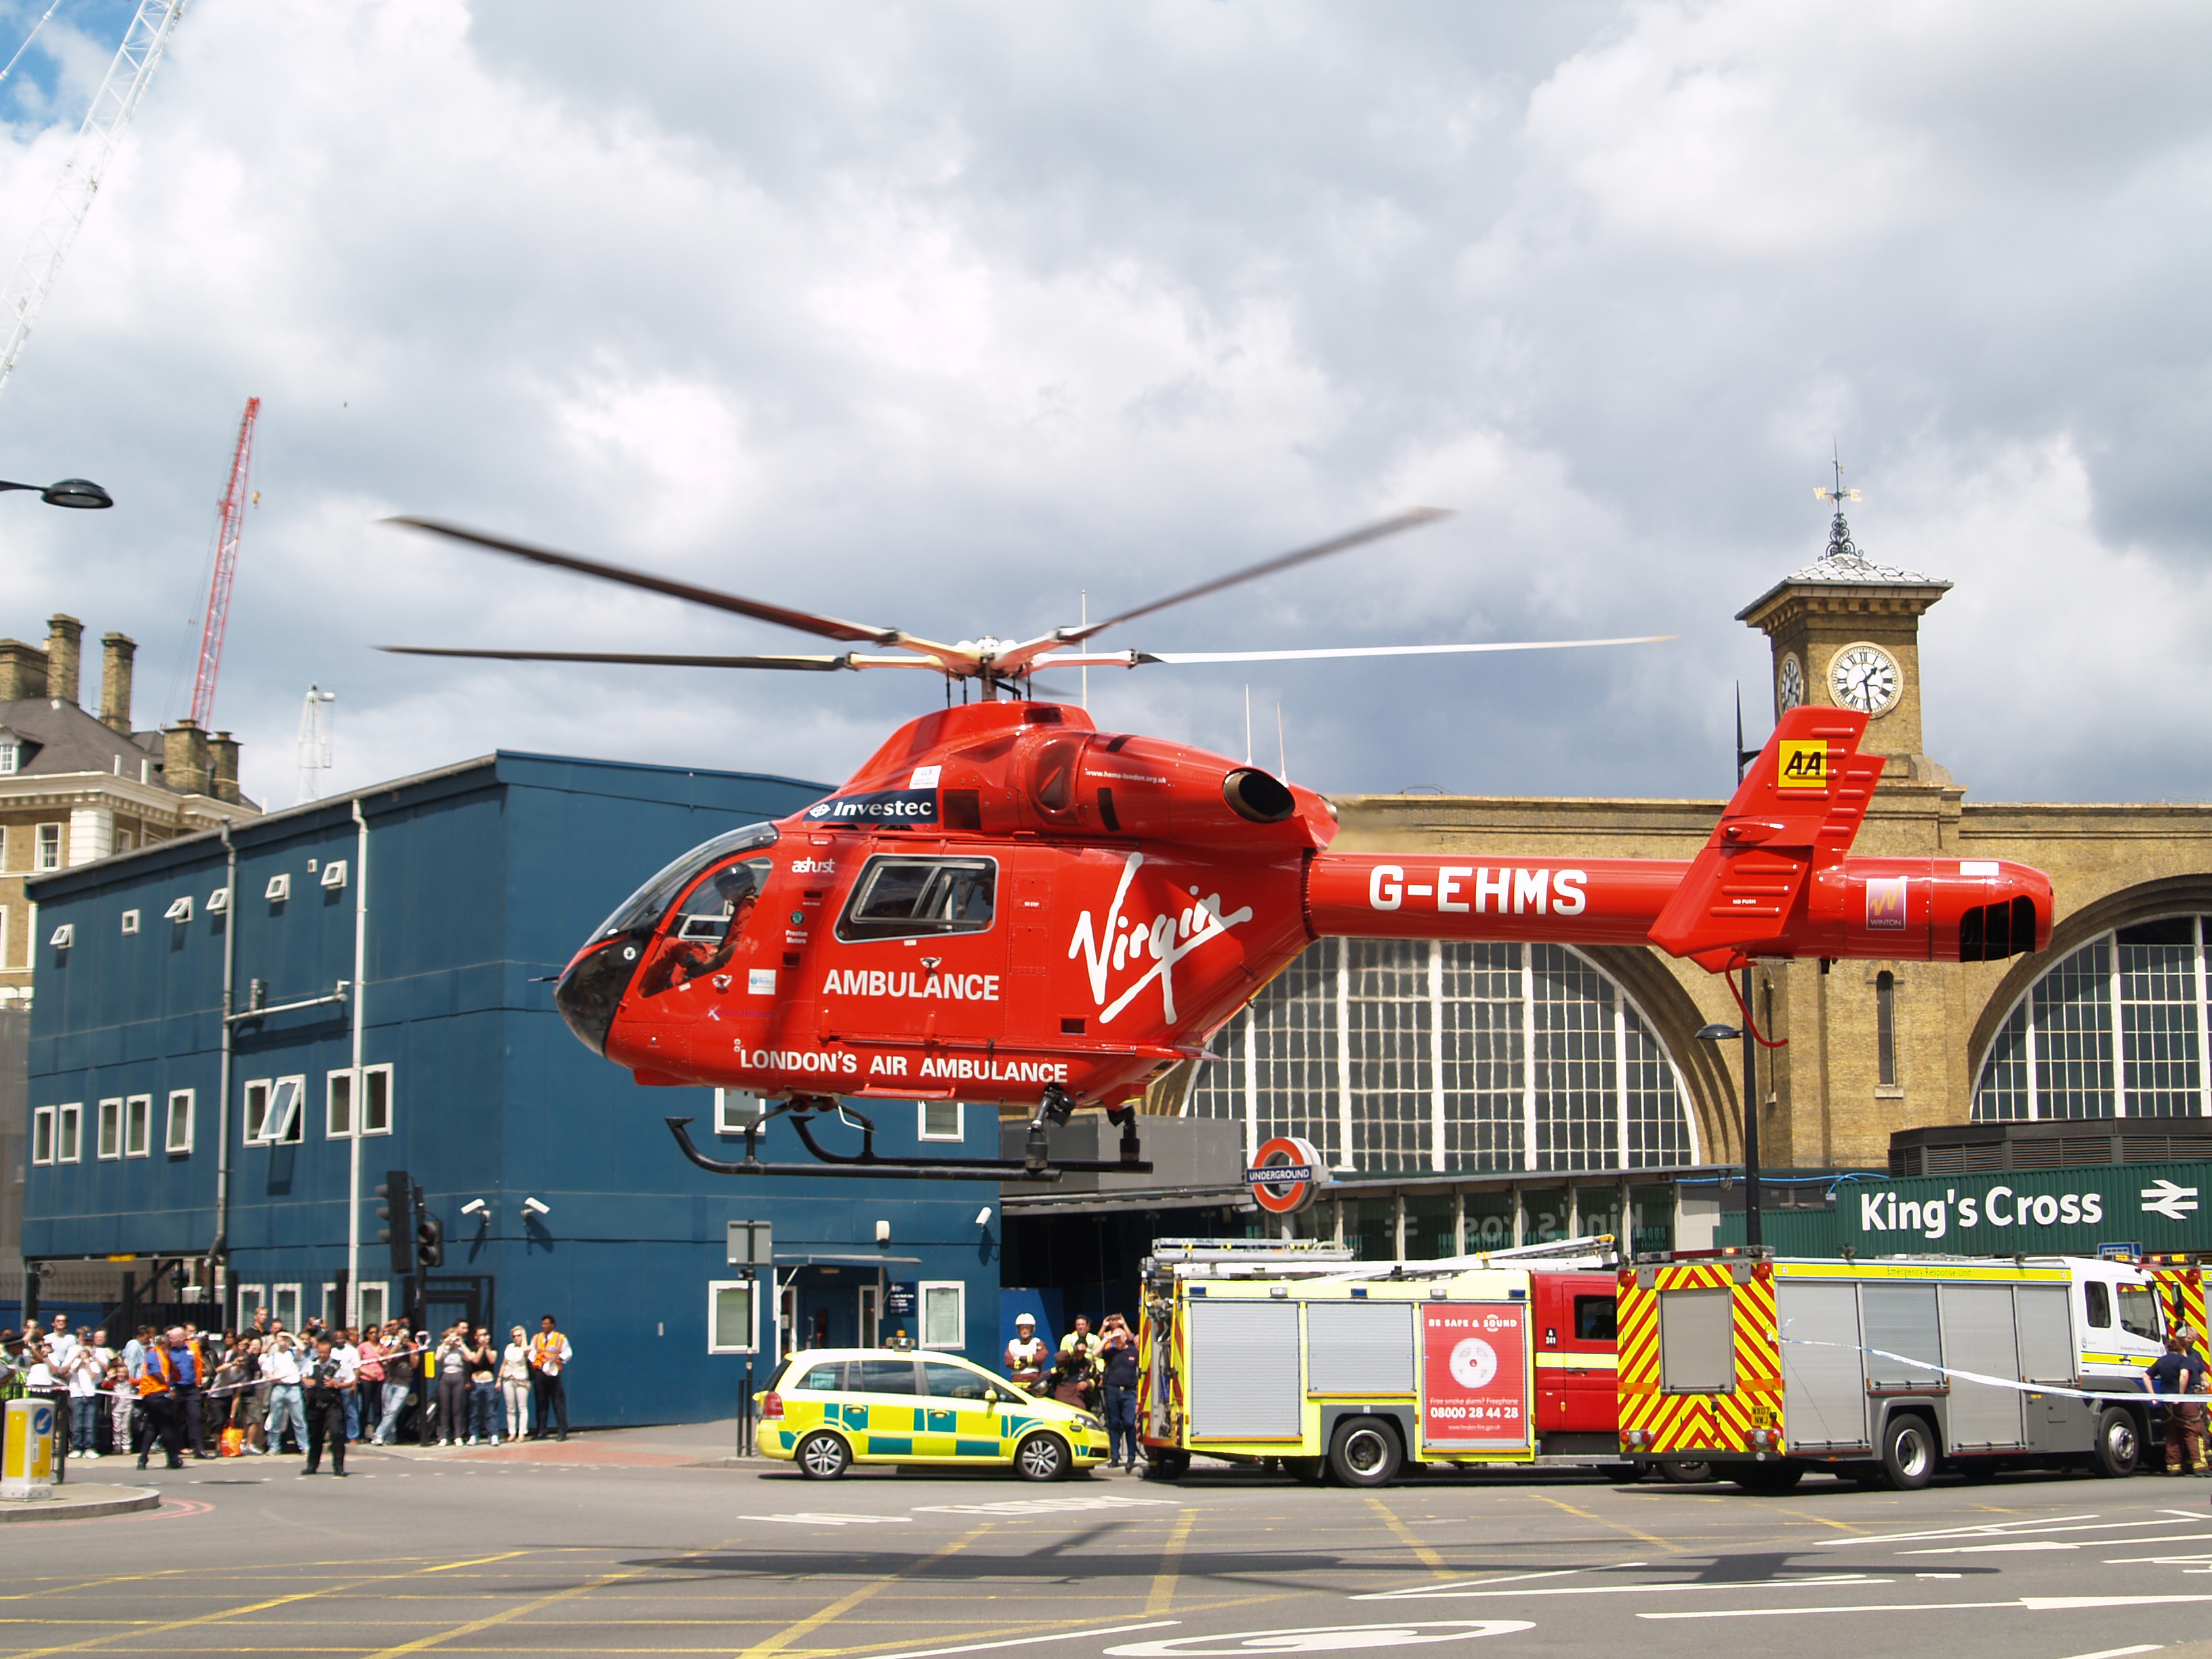 http://en.academic.ru/pictures/enwiki/76/London_Air_Ambulance_G-EHMS_%281%29.jpg